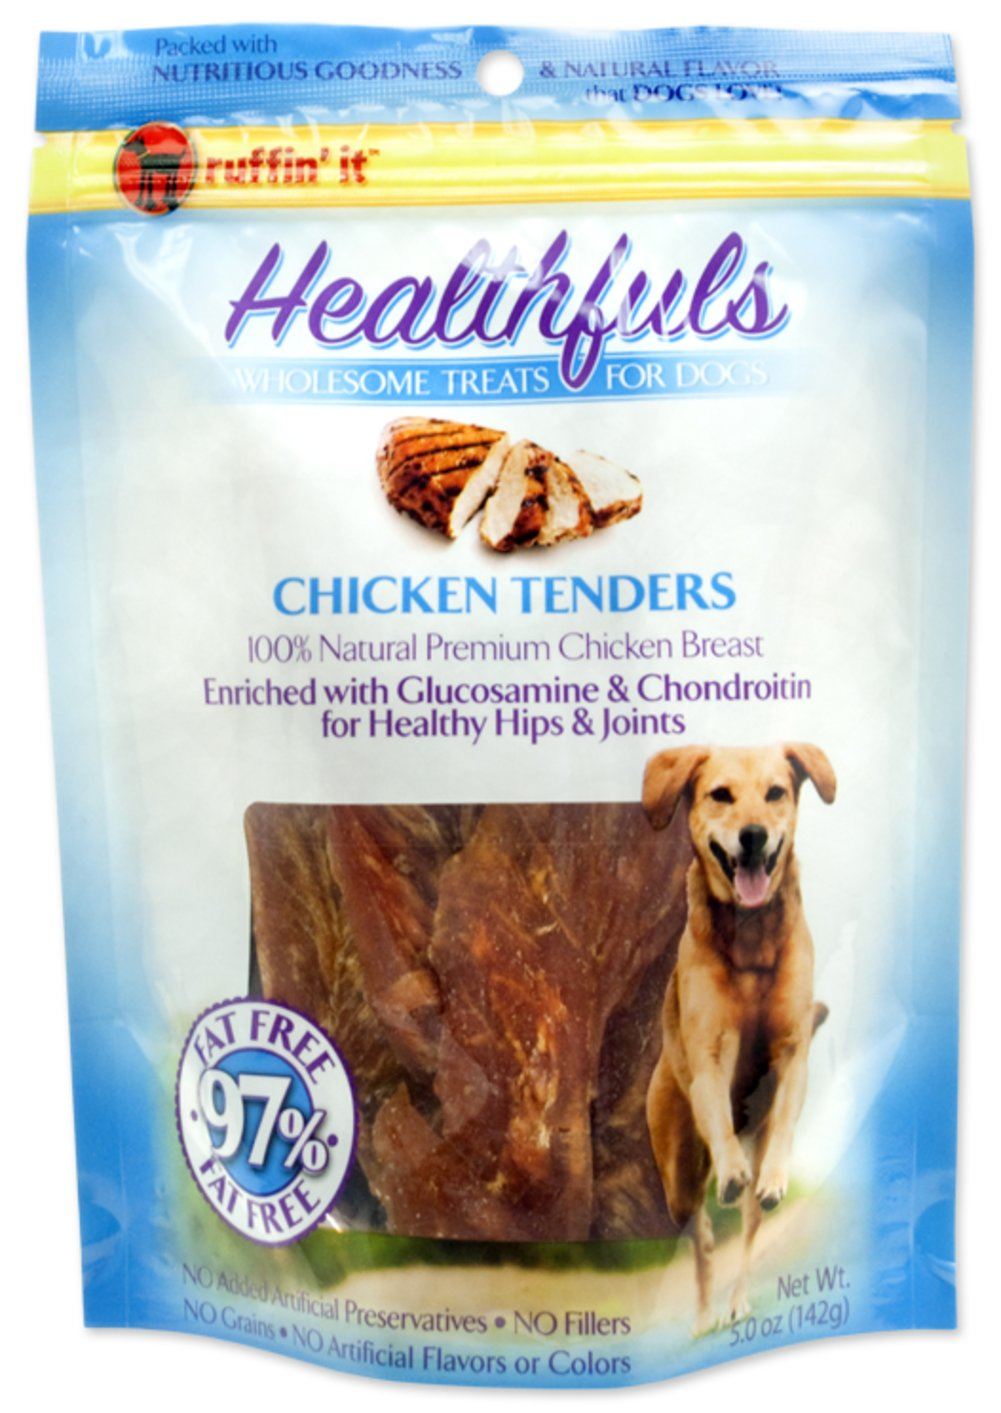 Healthfuls Chicken Tenders with Glucosamine & Chondroitin  5 oz Bag  $8.99